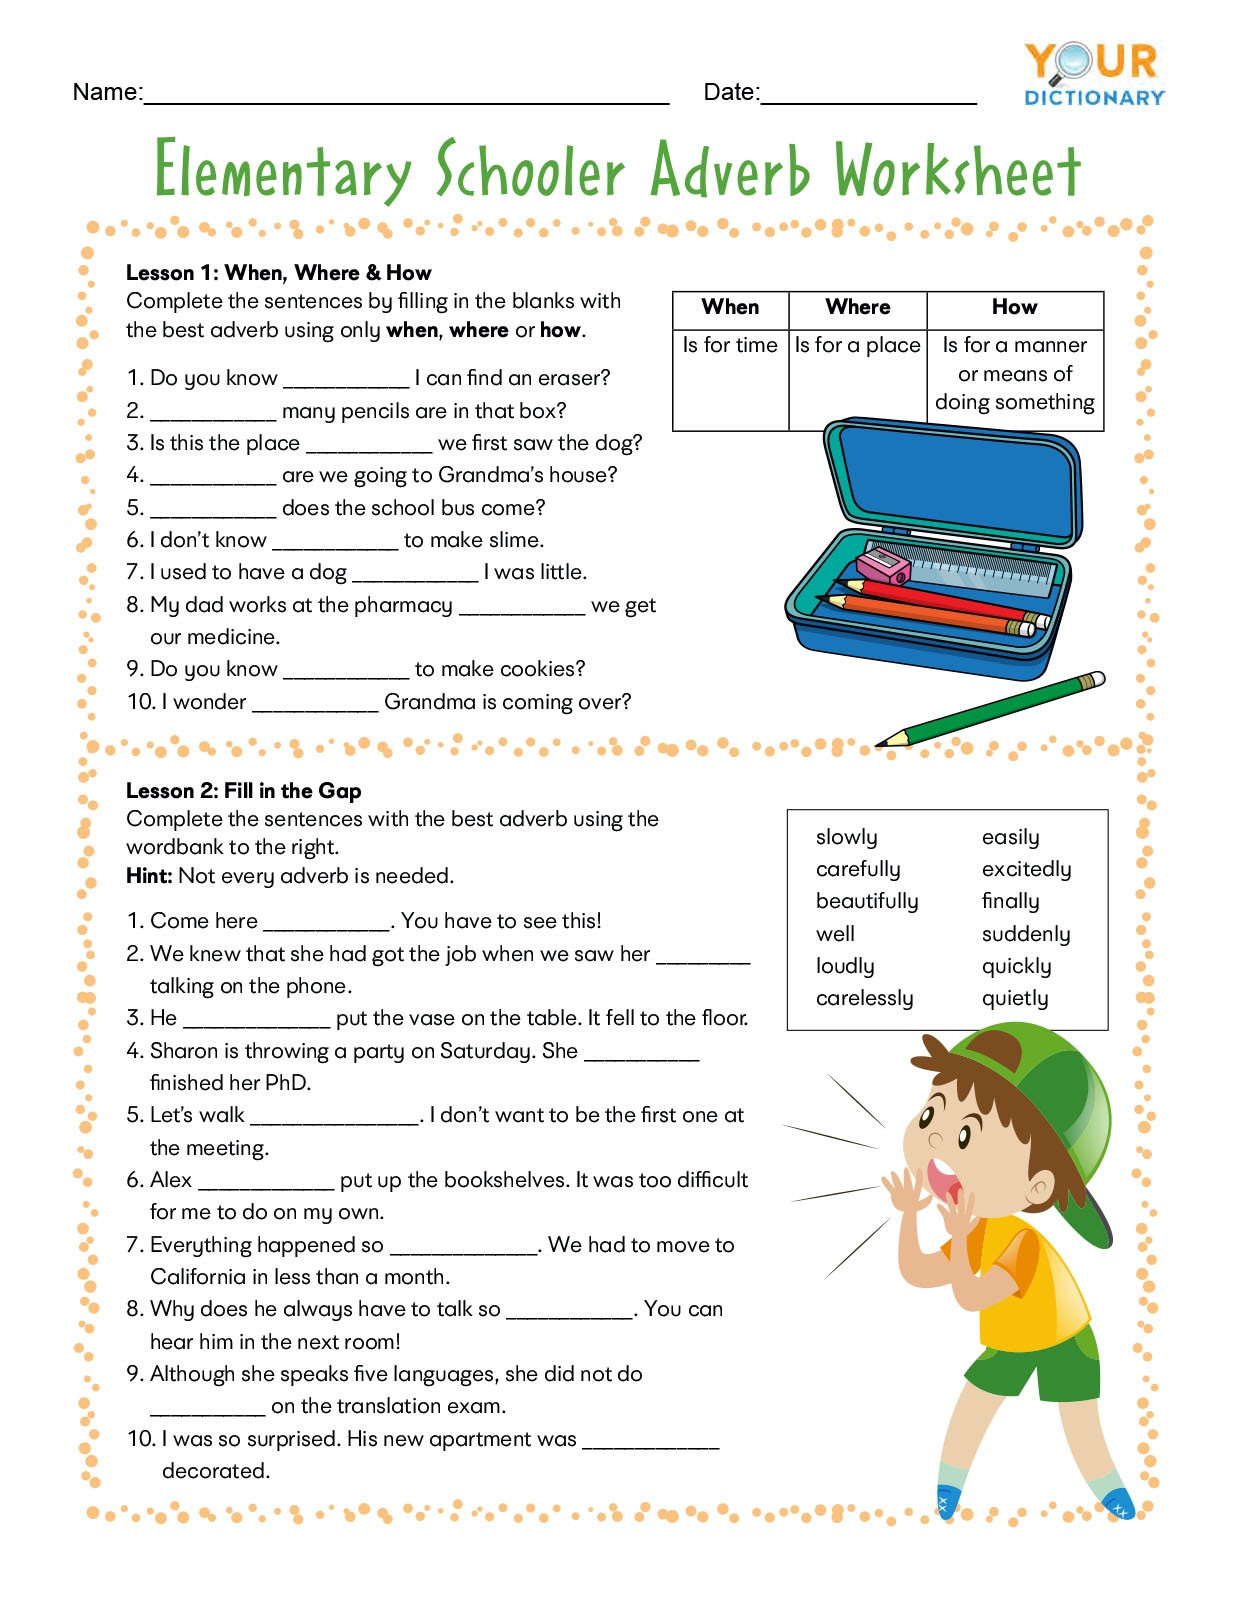 Adverb Worksheets for Elementary and Middle School